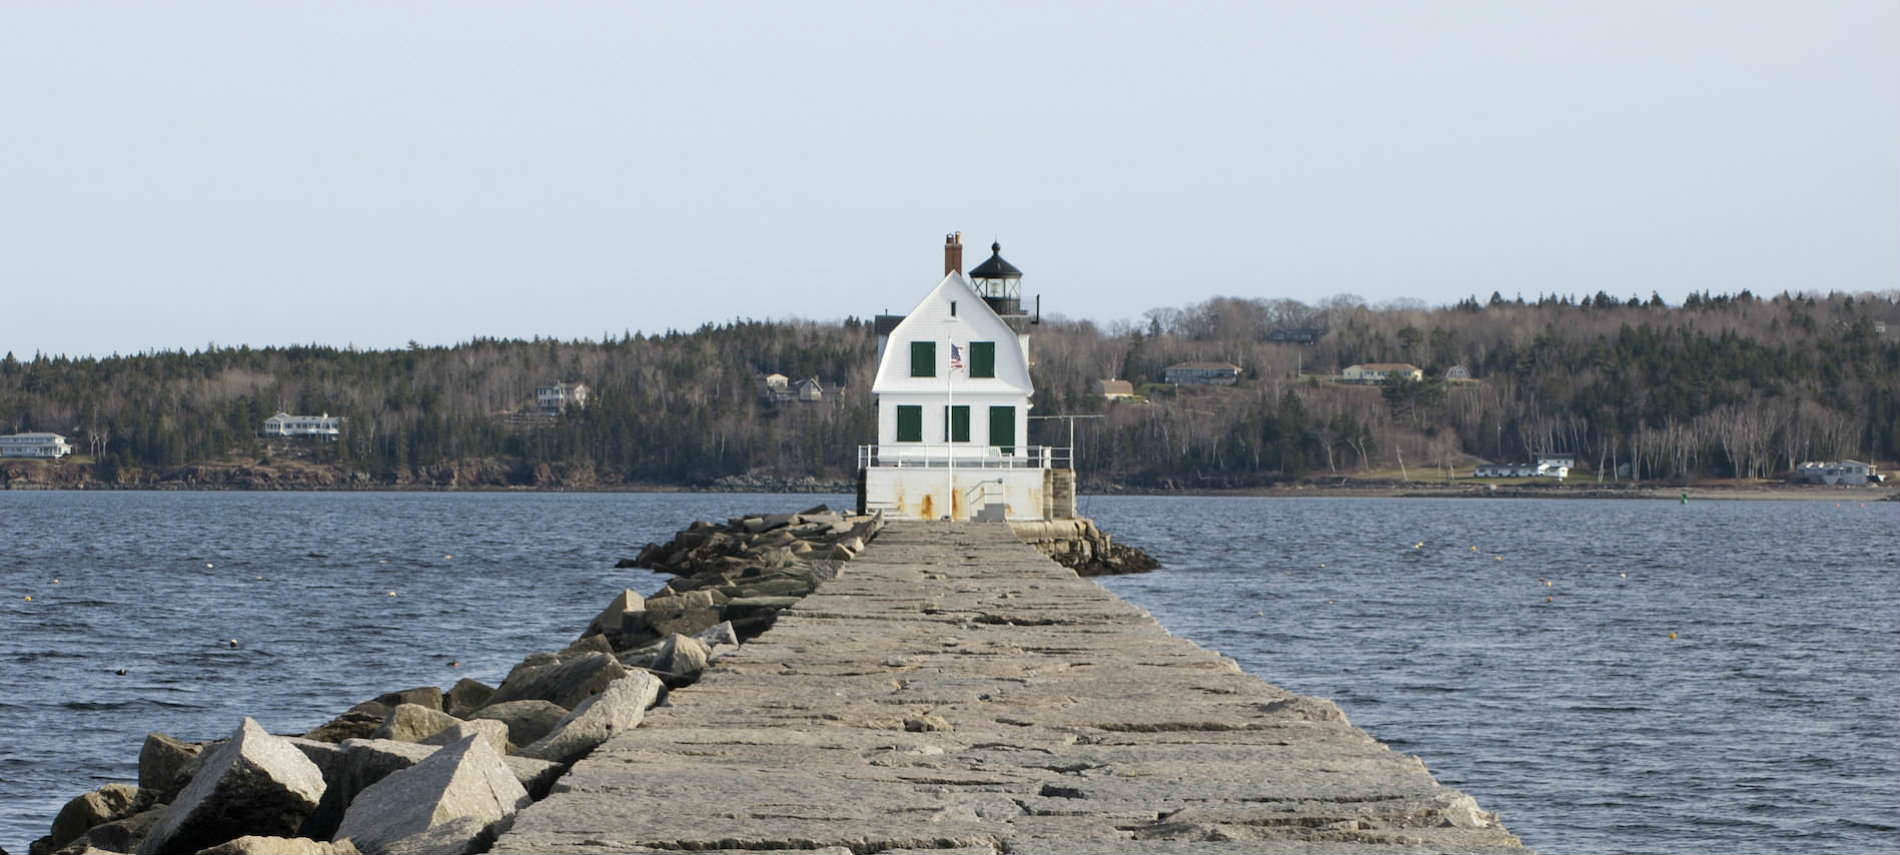 Stone pier leads to small white house surrounded by water and forested shoreline.